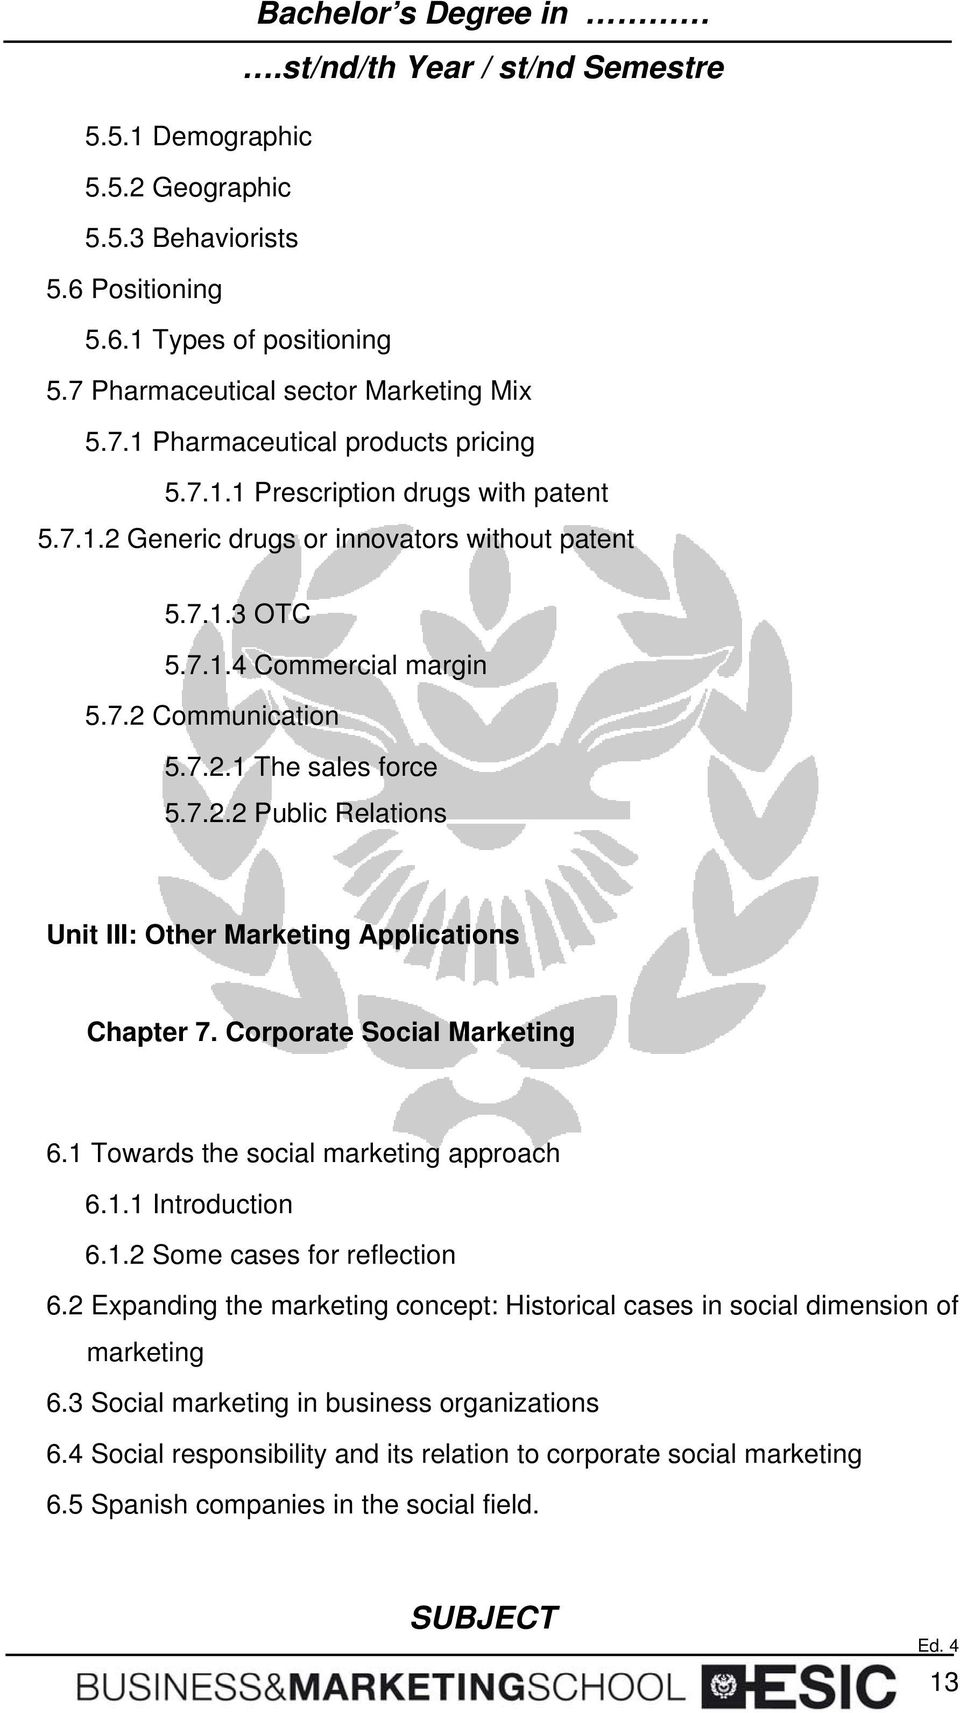 Corporate Social Marketing 6.1 Towards the social marketing approach 6.1.1 Introduction 6.1.2 Some cases for reflection 6.